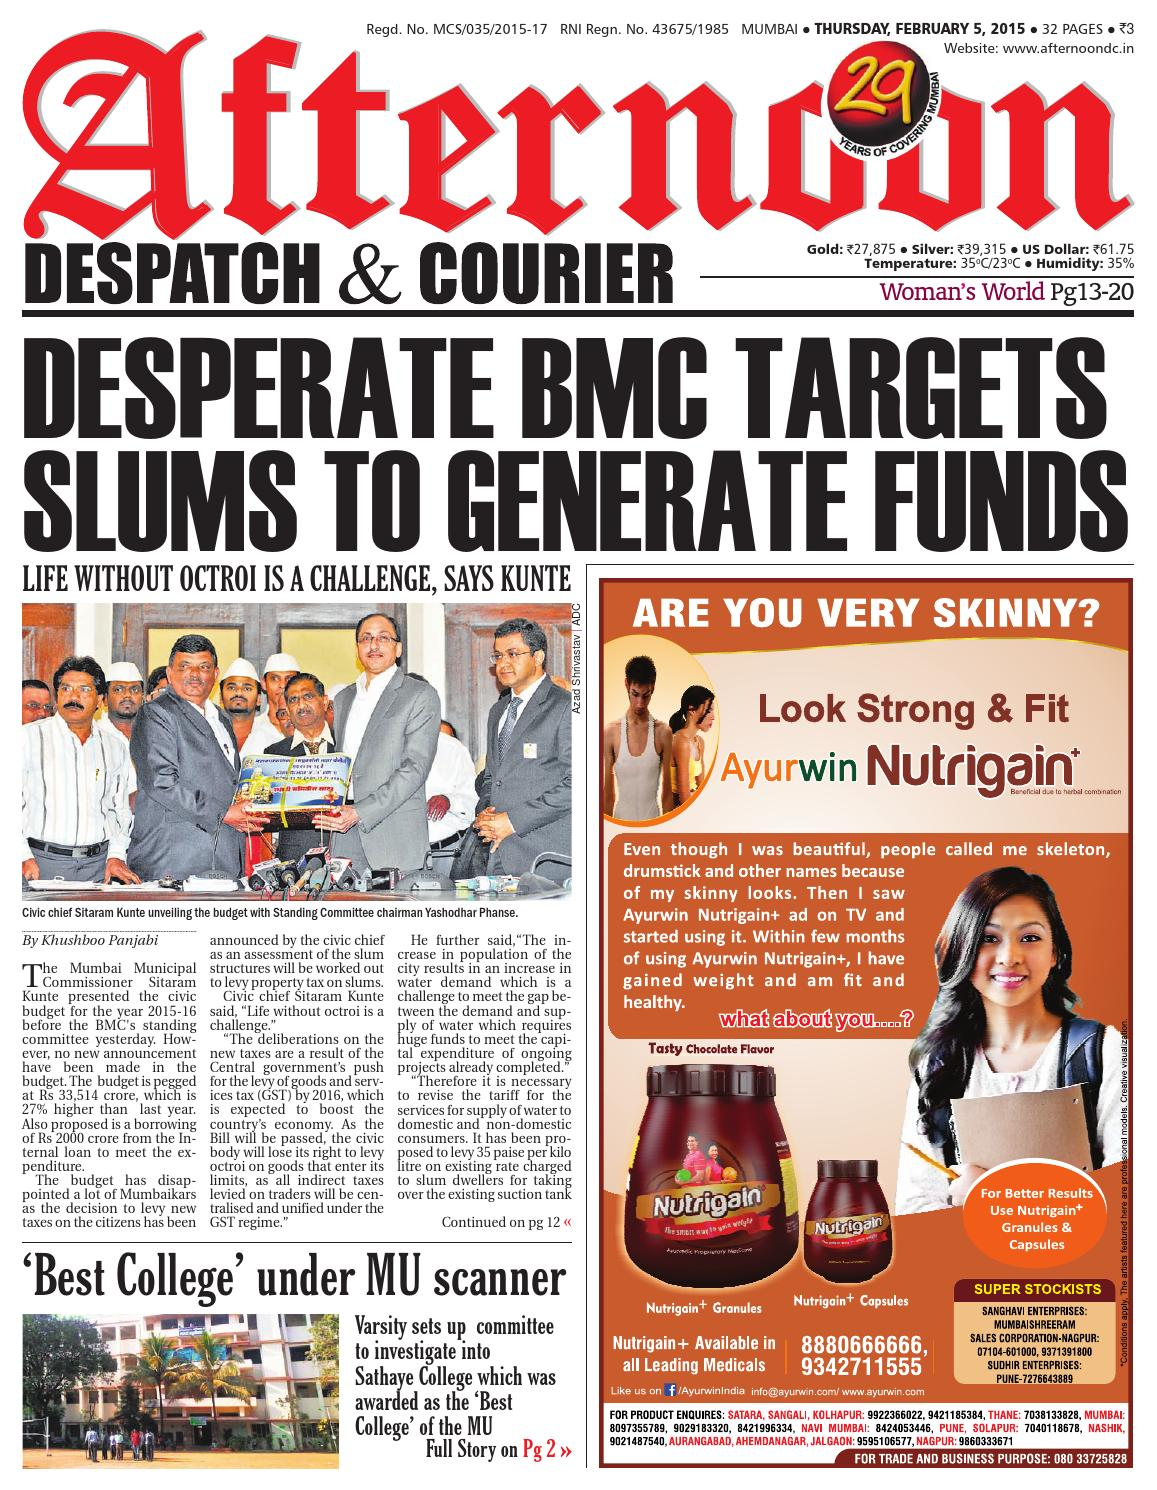 05 feb 2015 by Afternoon Despatch & Courier - issuu